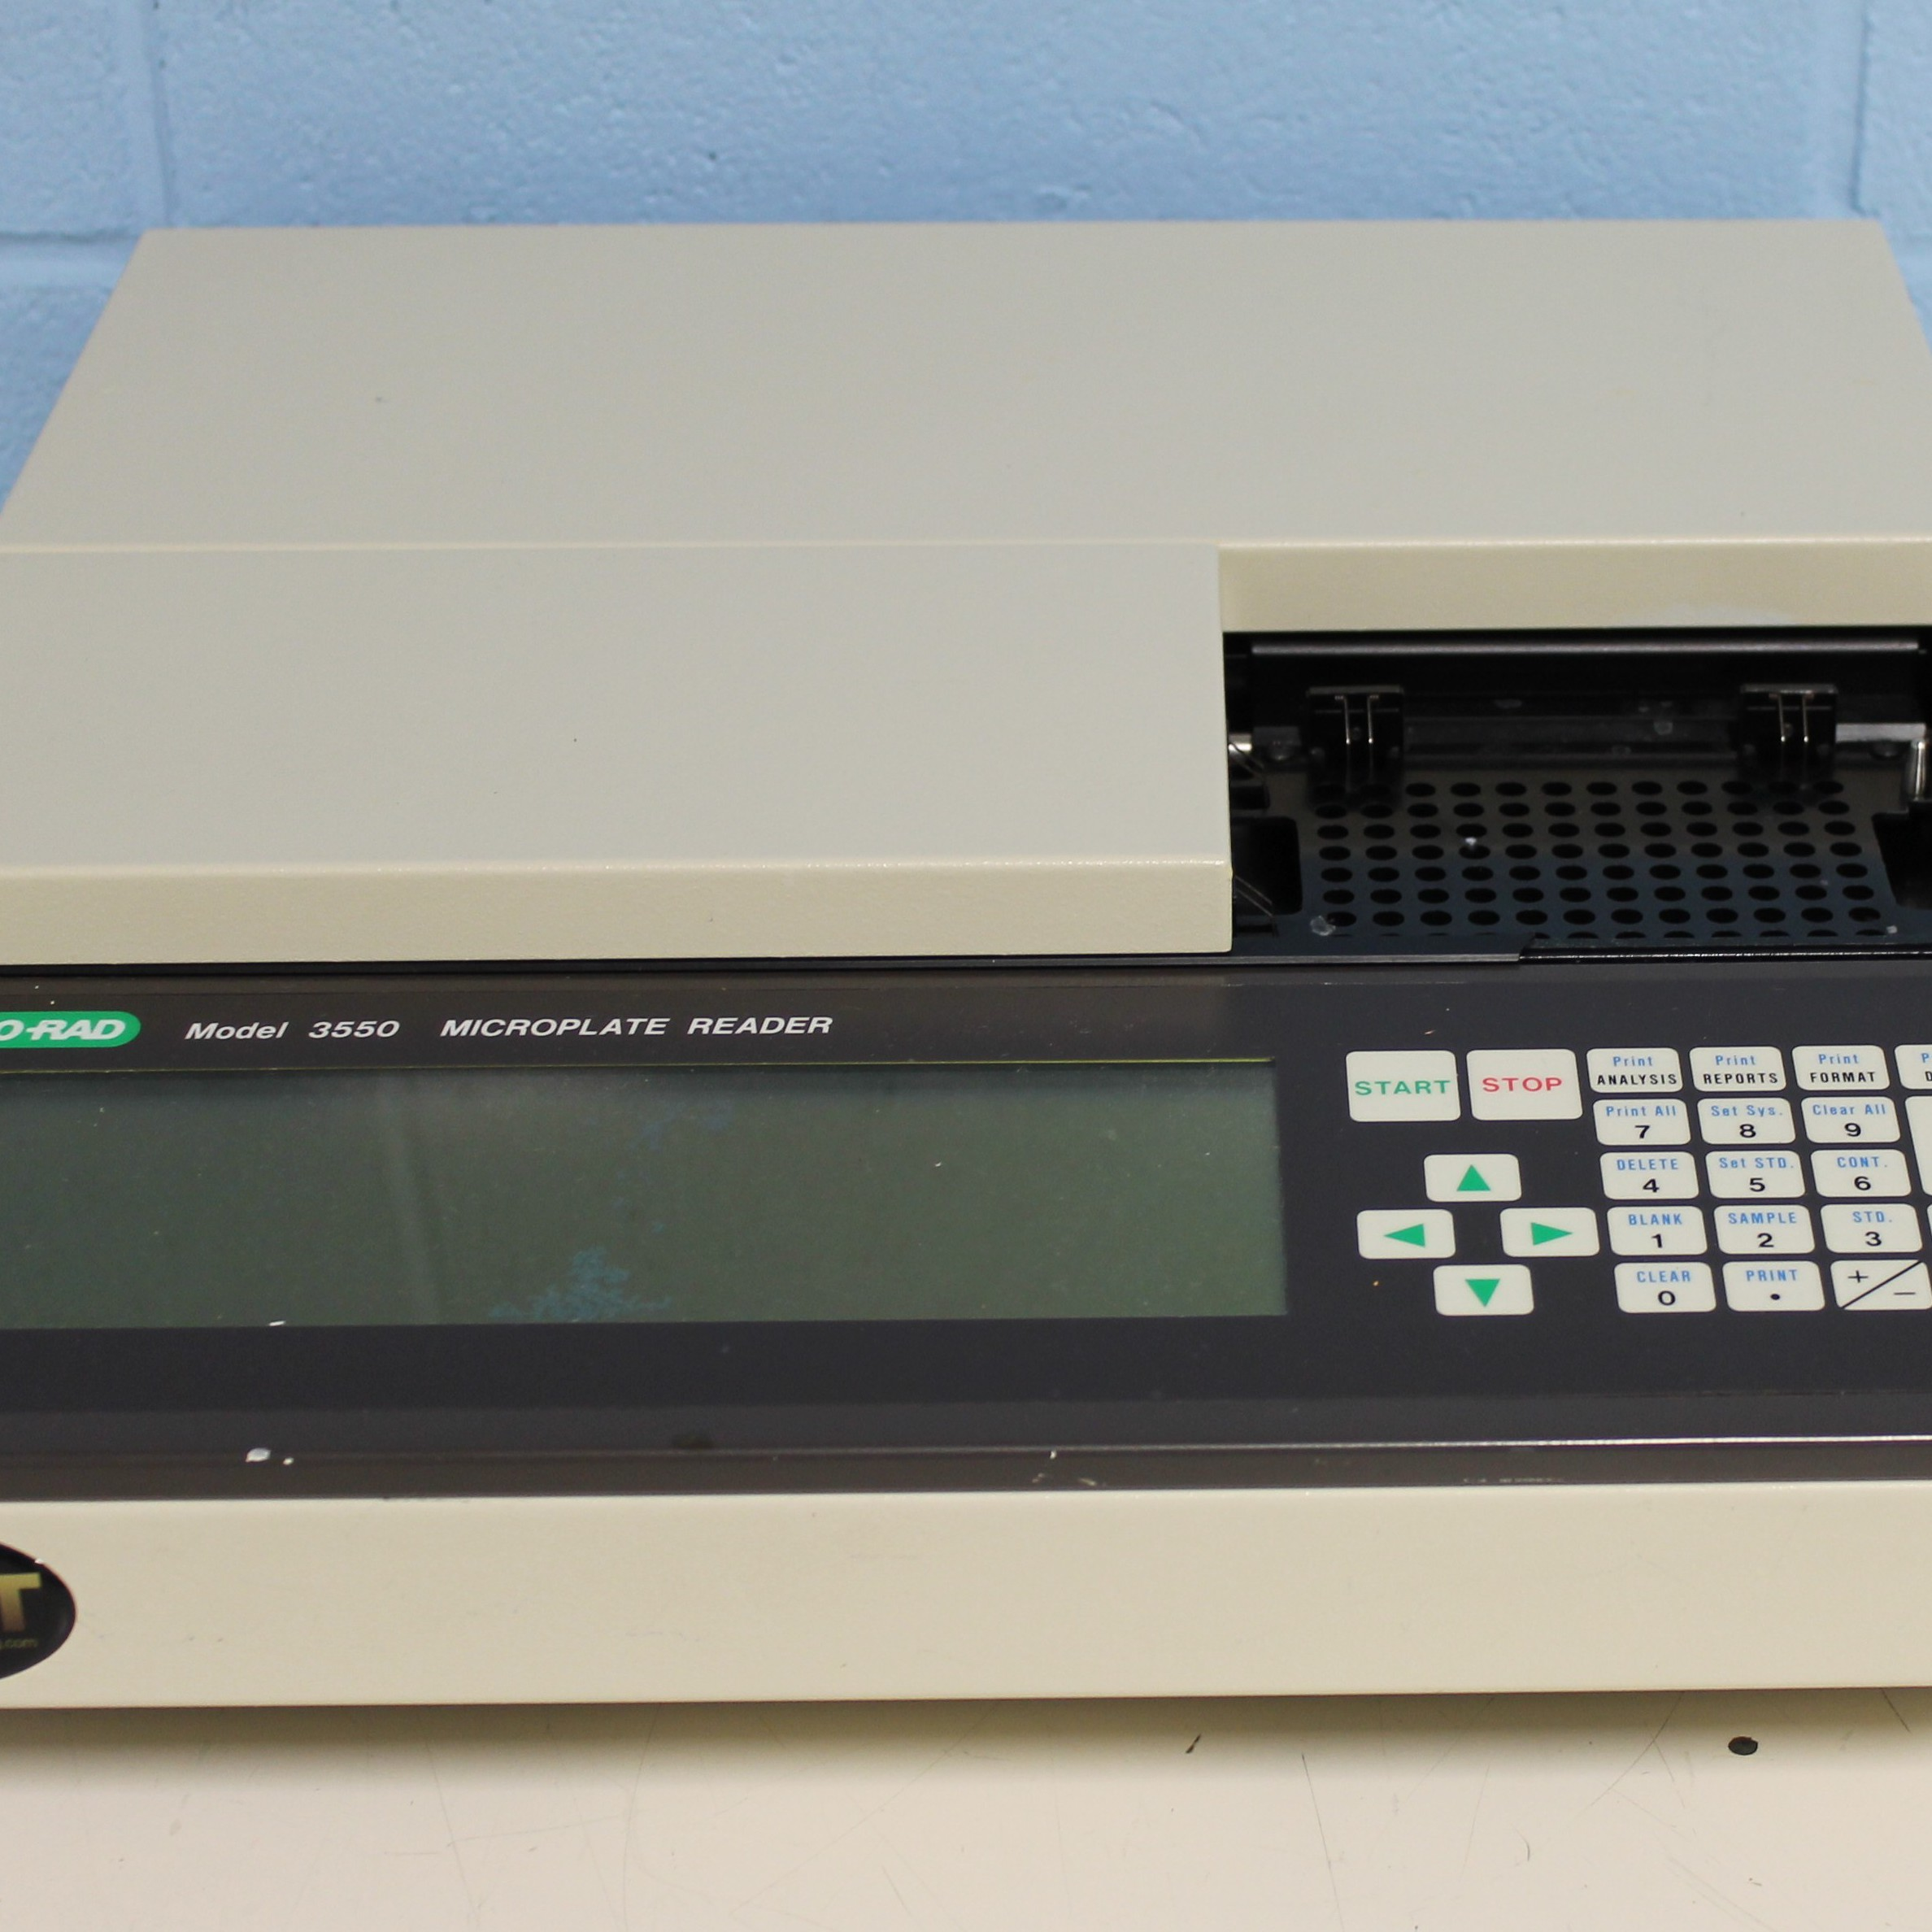 Bio-Rad Model 3550 Microplate Reader Image